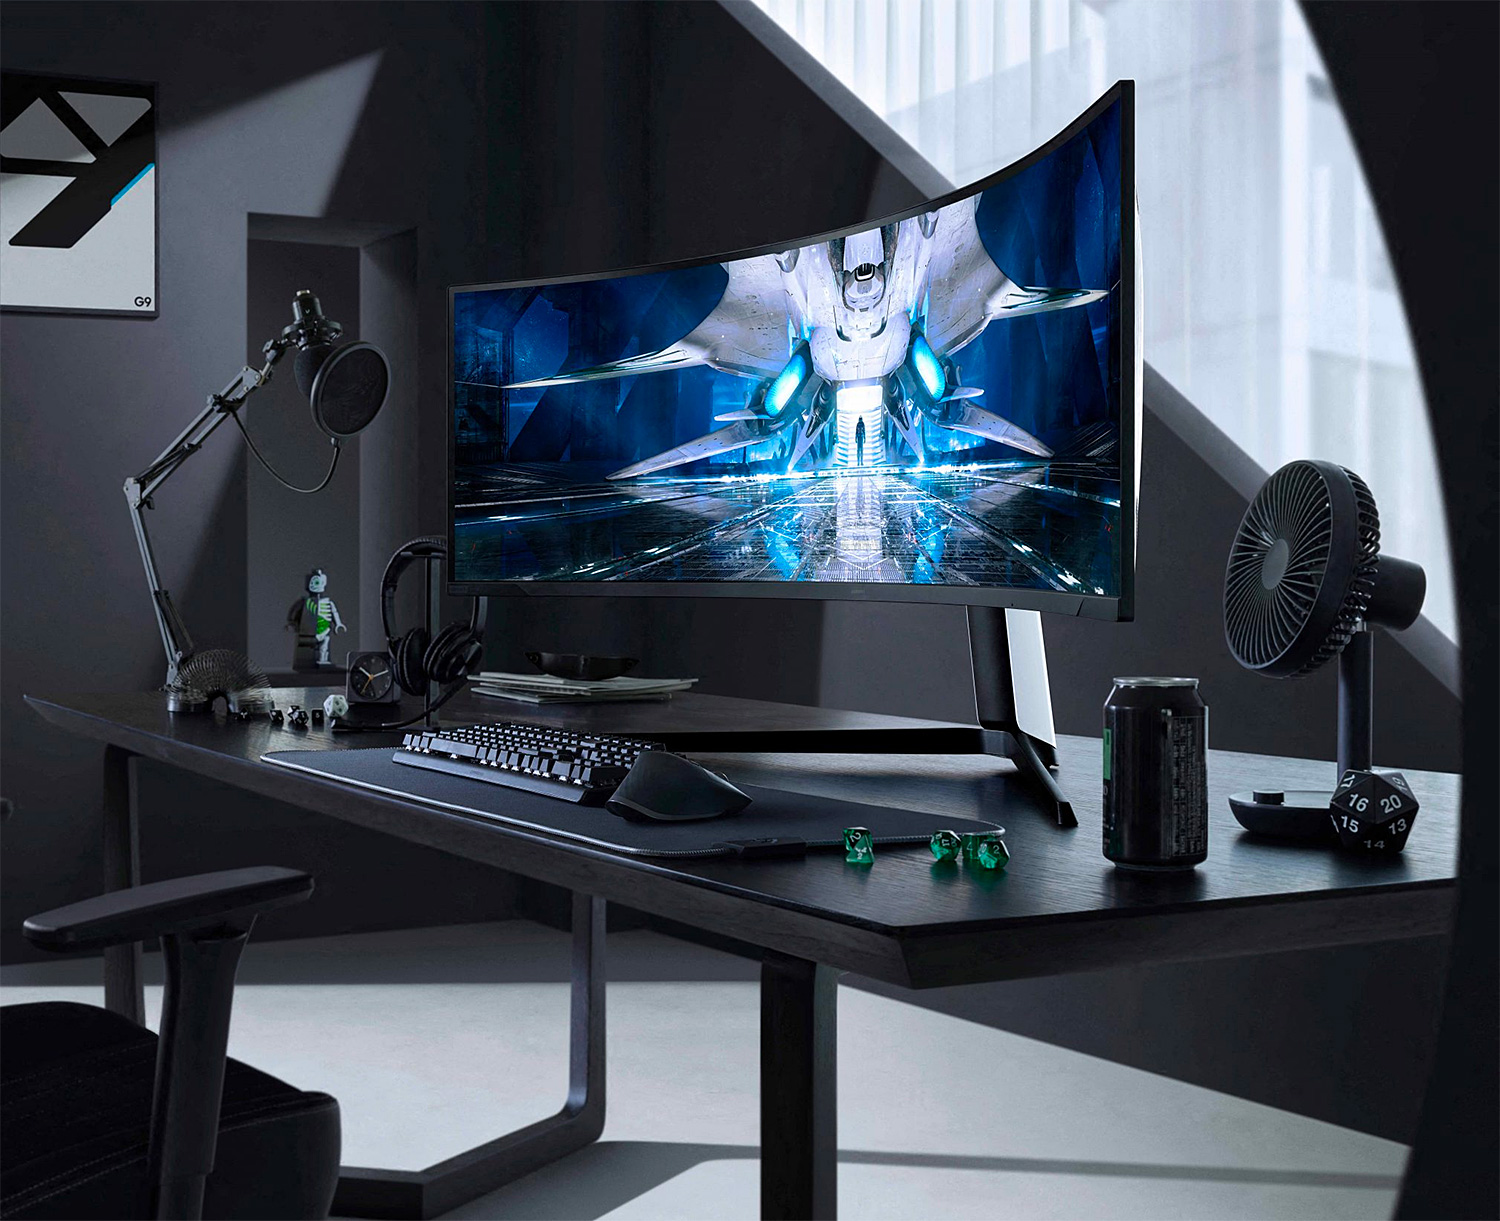 Samsung Introduces Odyssey Neo G9 MiniLED Monitor at werd.com